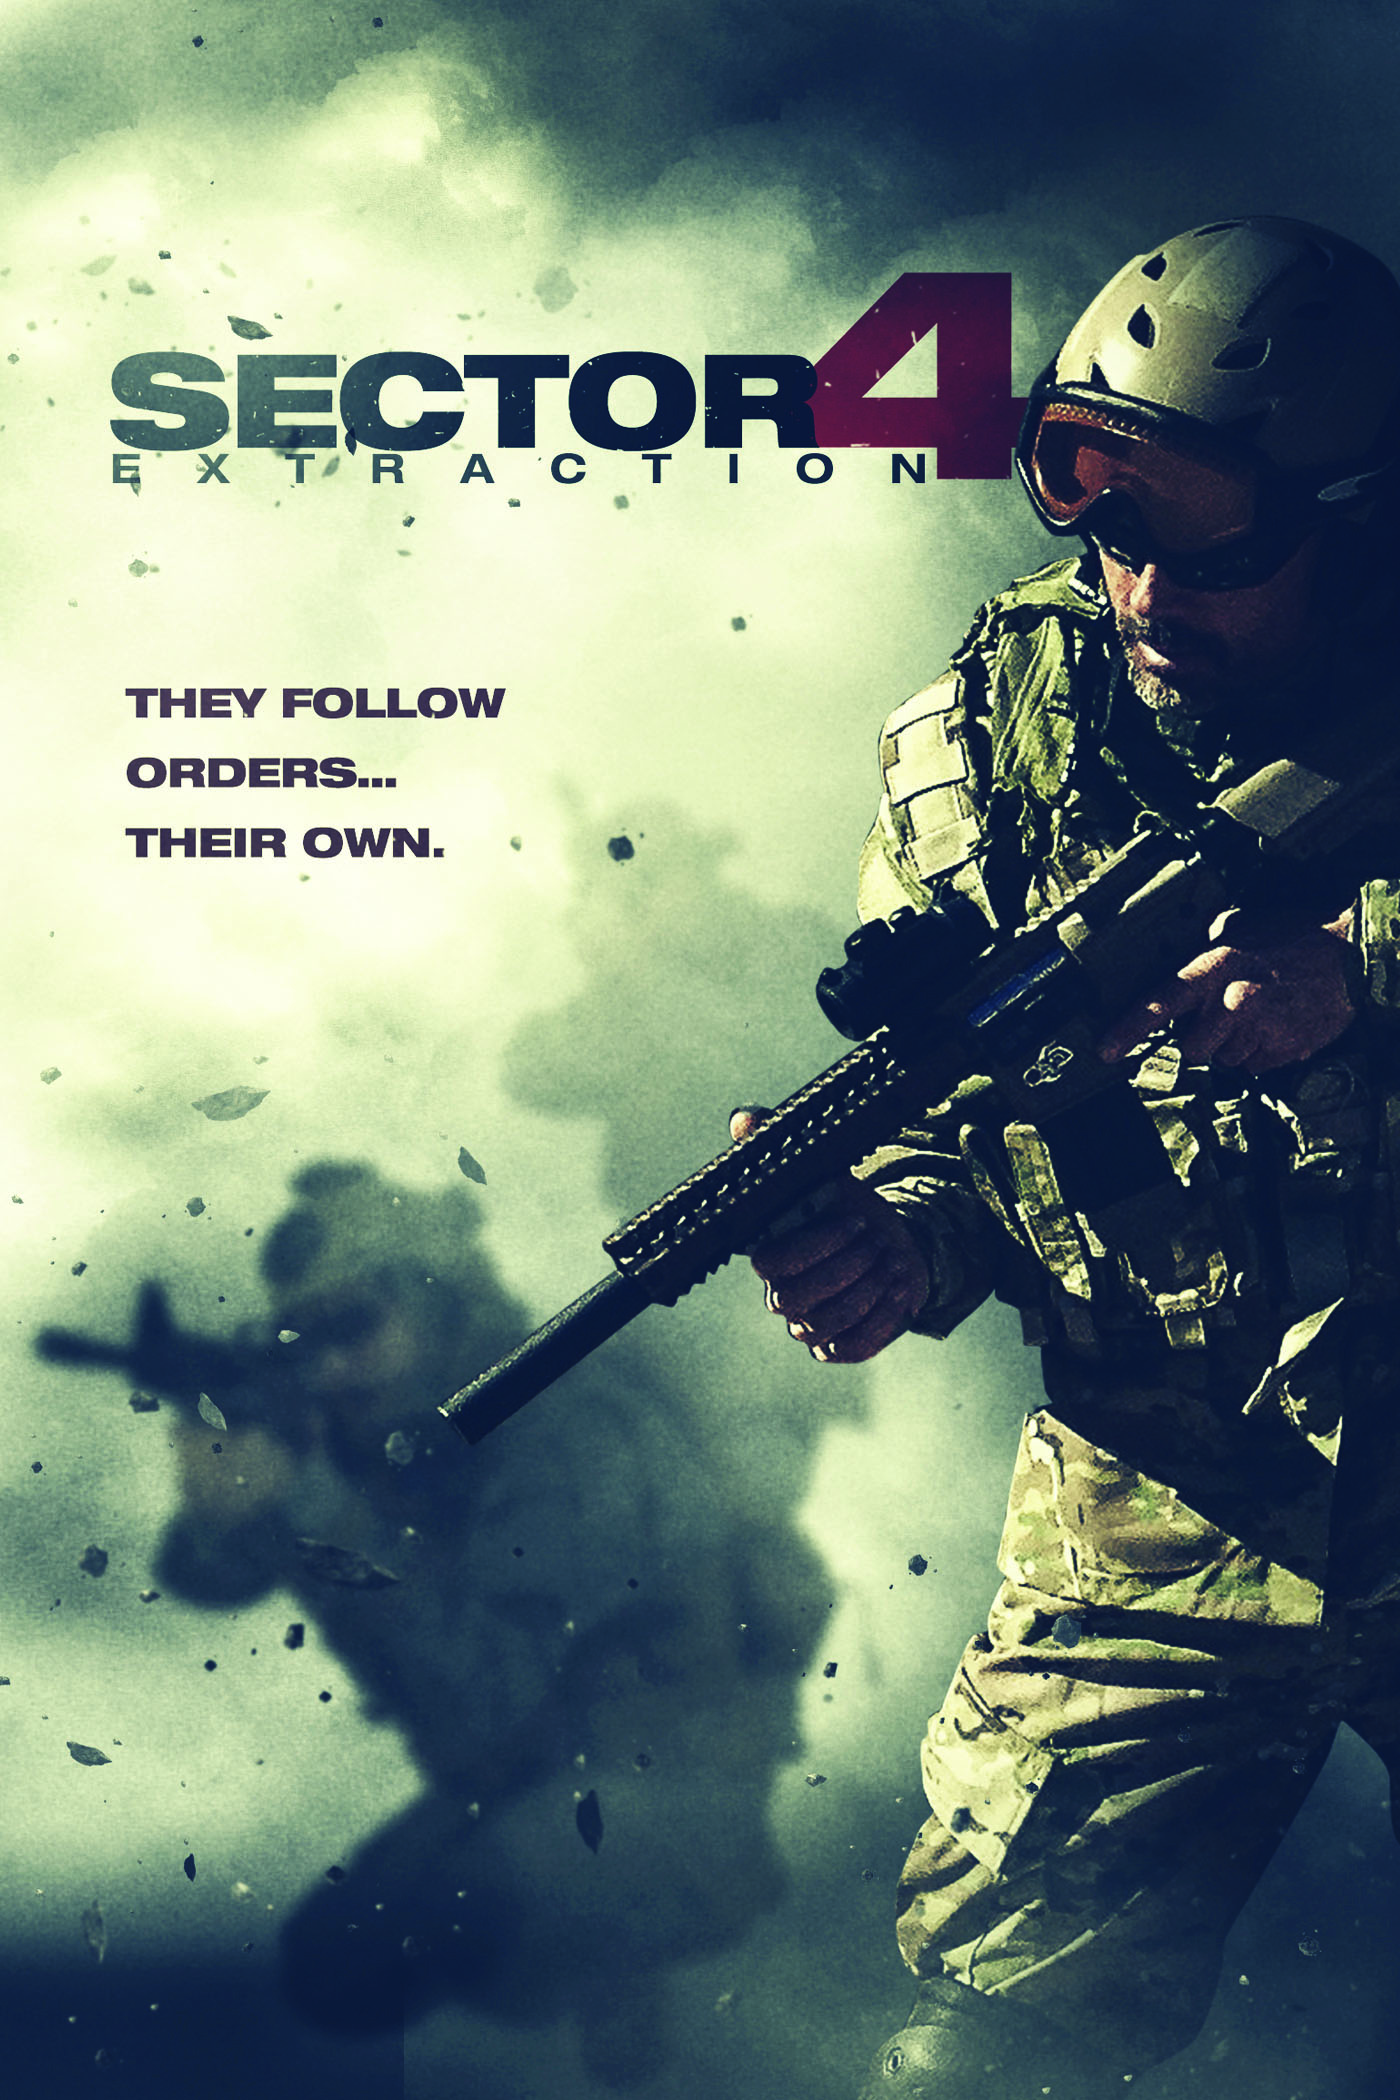 Sector 4 Extraction 2014 Imdb